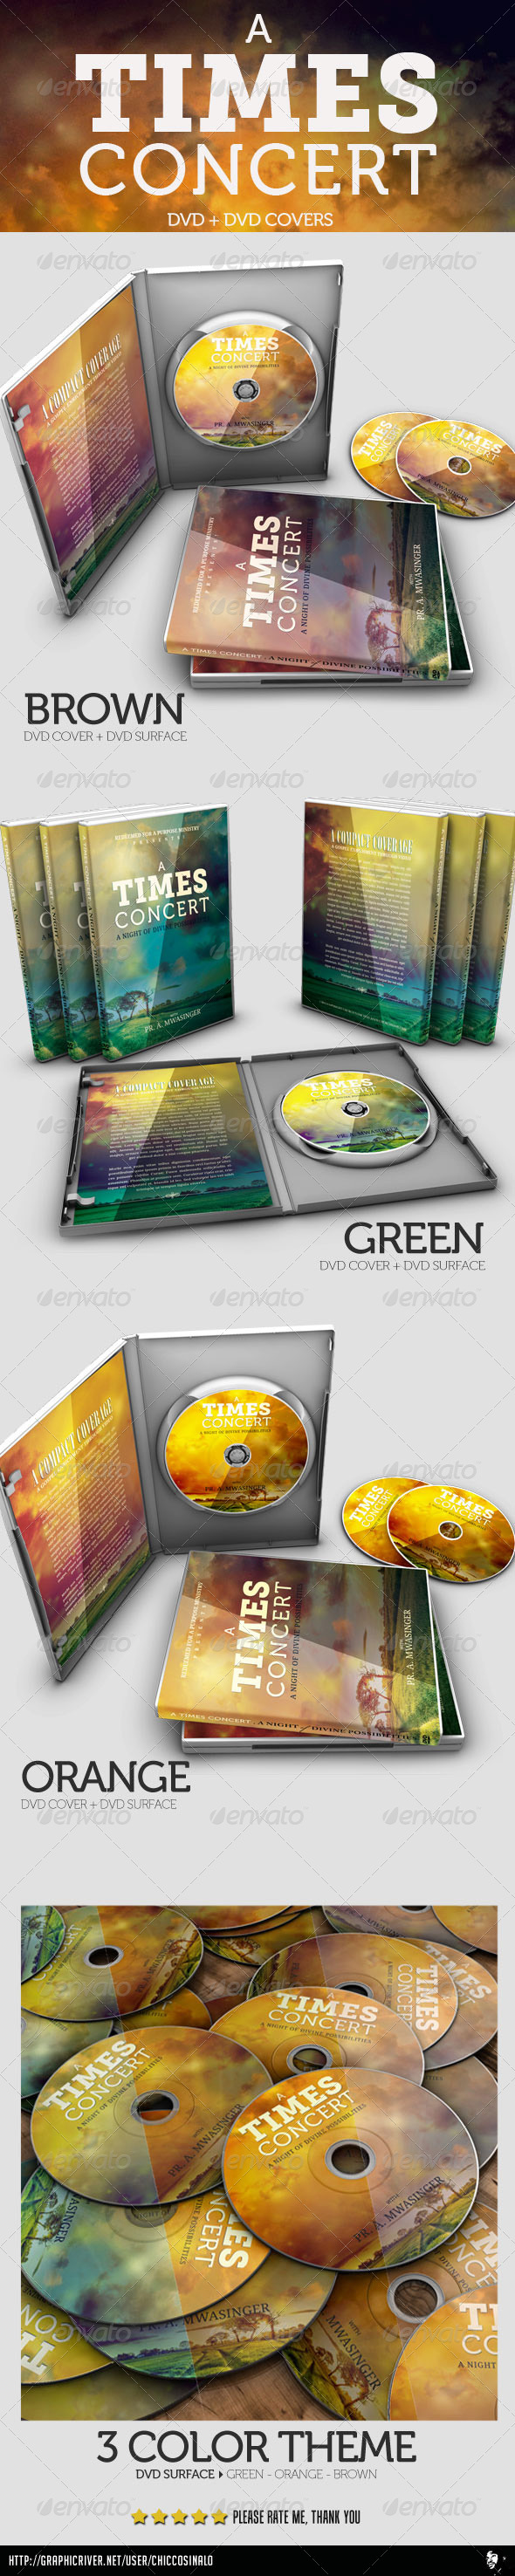 A Times Concert DVD and DVD COVER - CD & DVD Artwork Print Templates